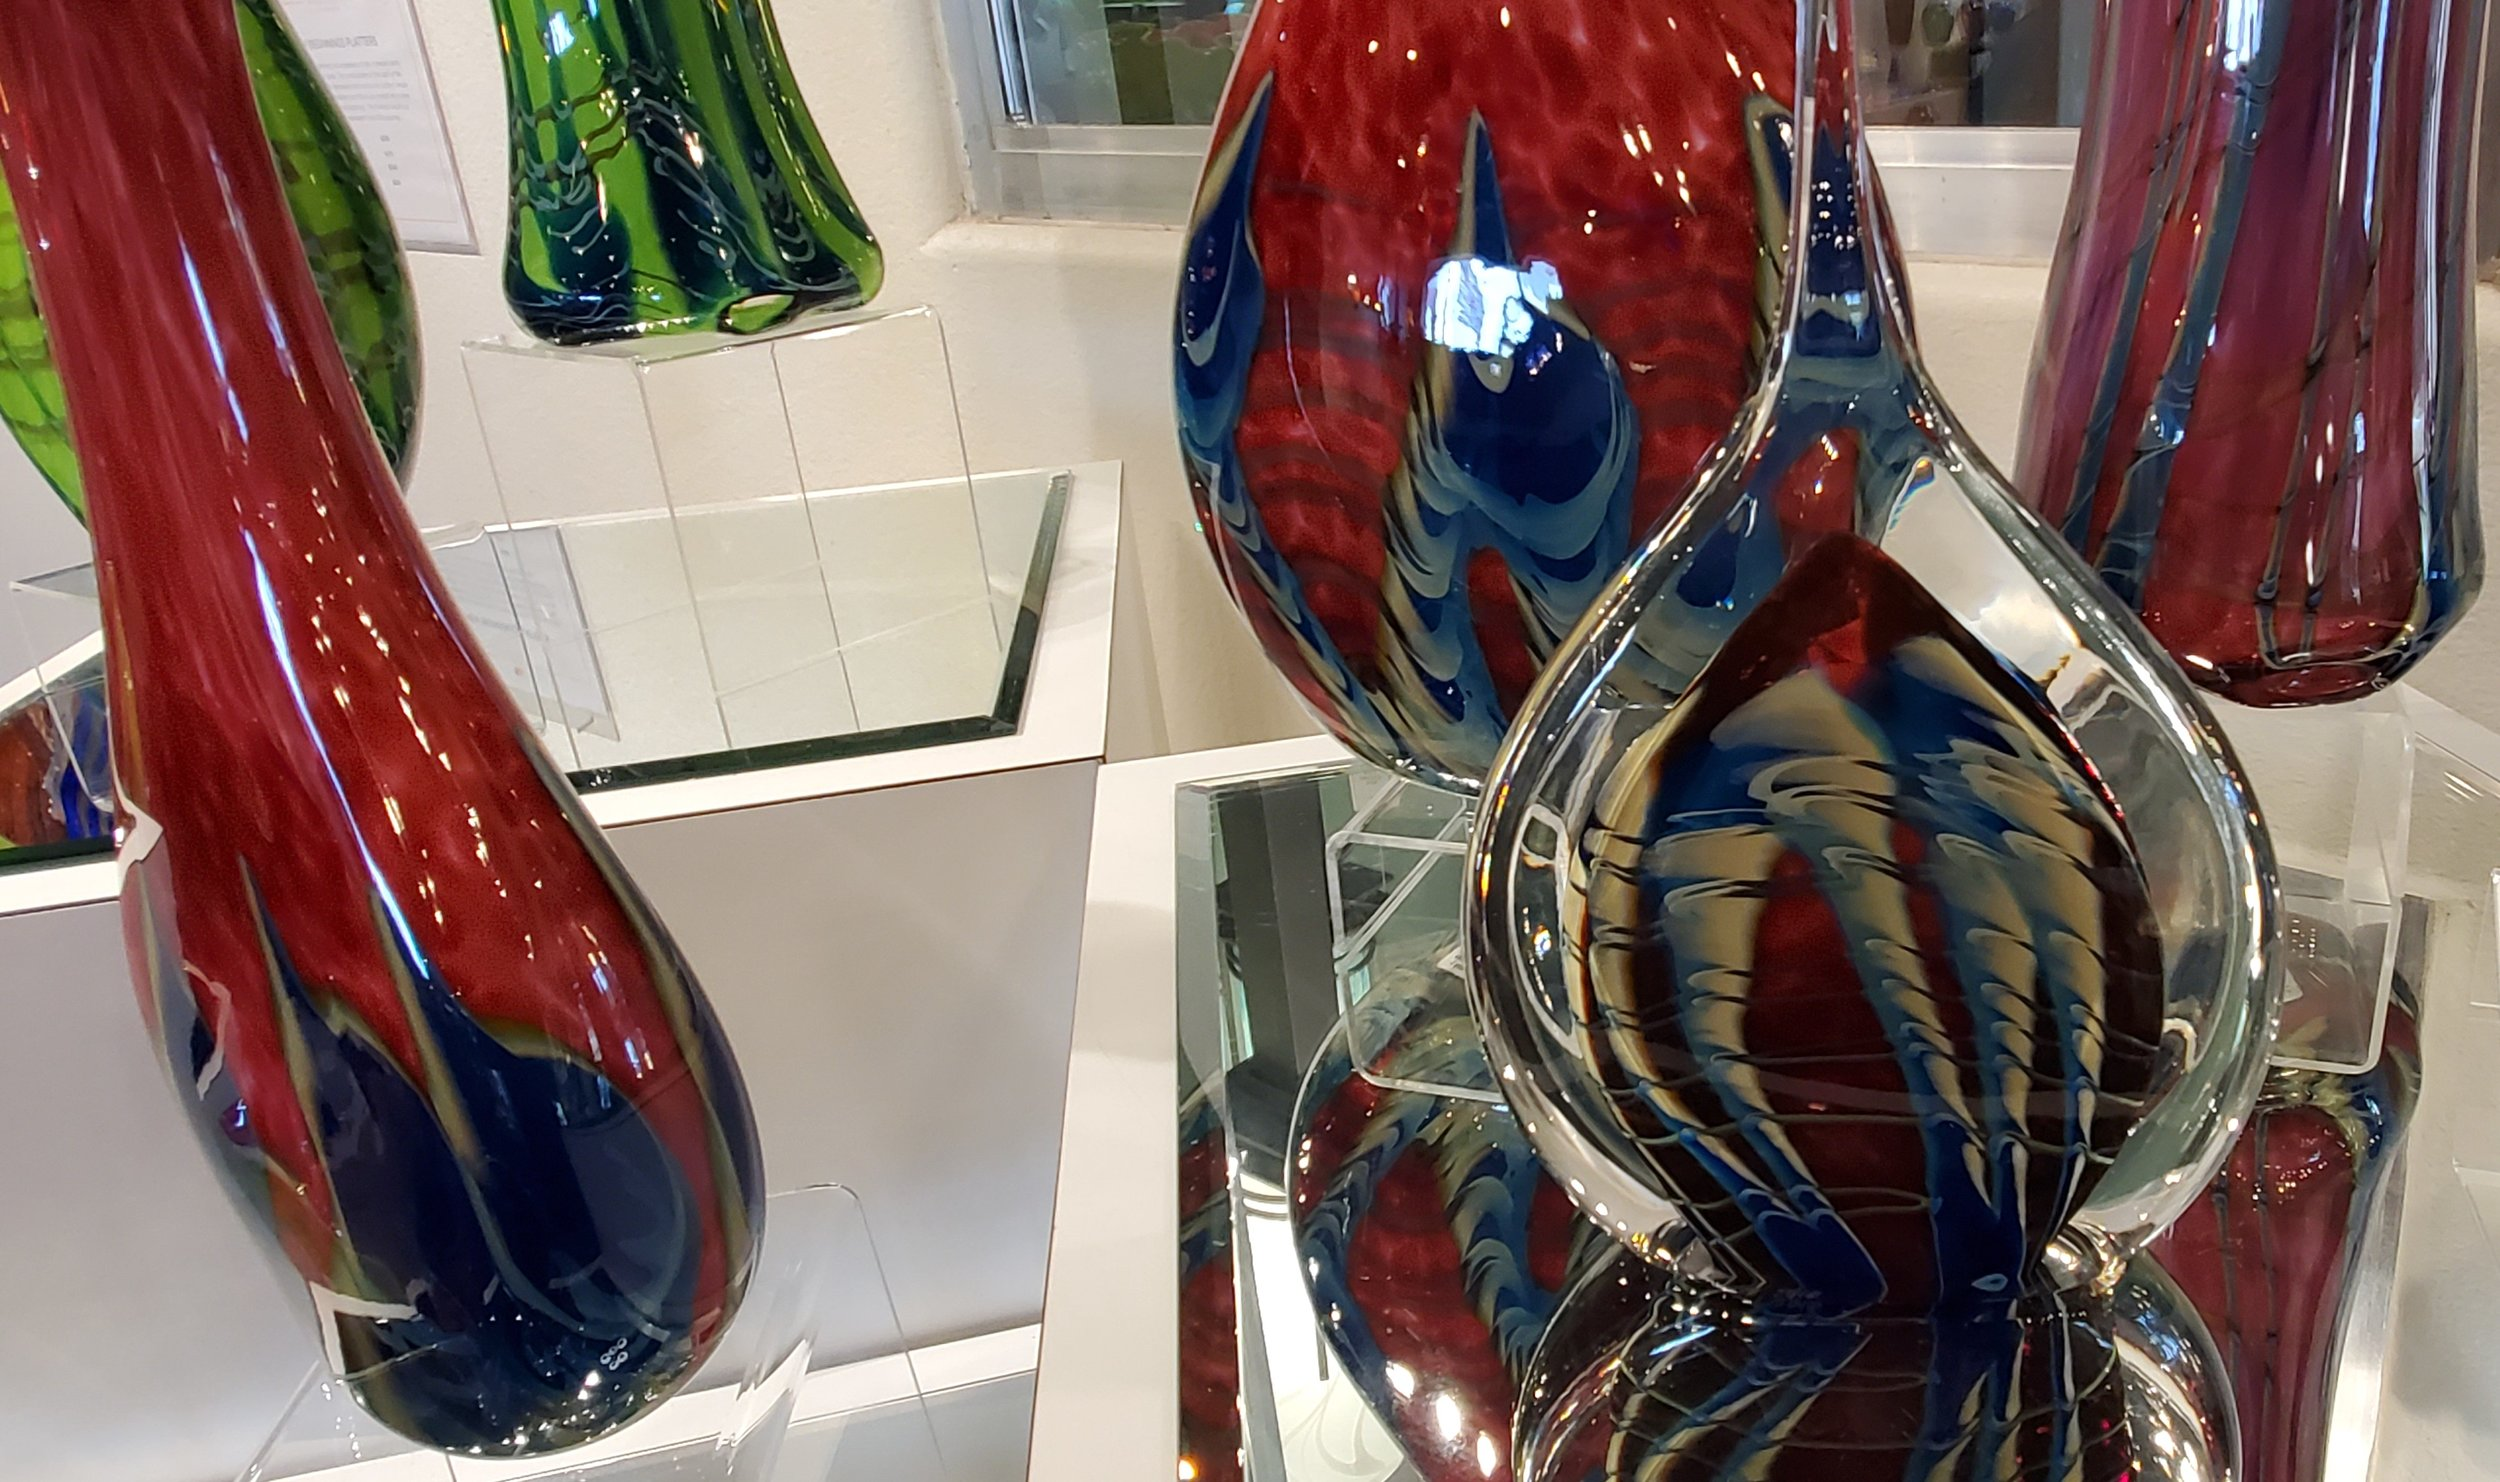 Wimberley Glass 02.jpg